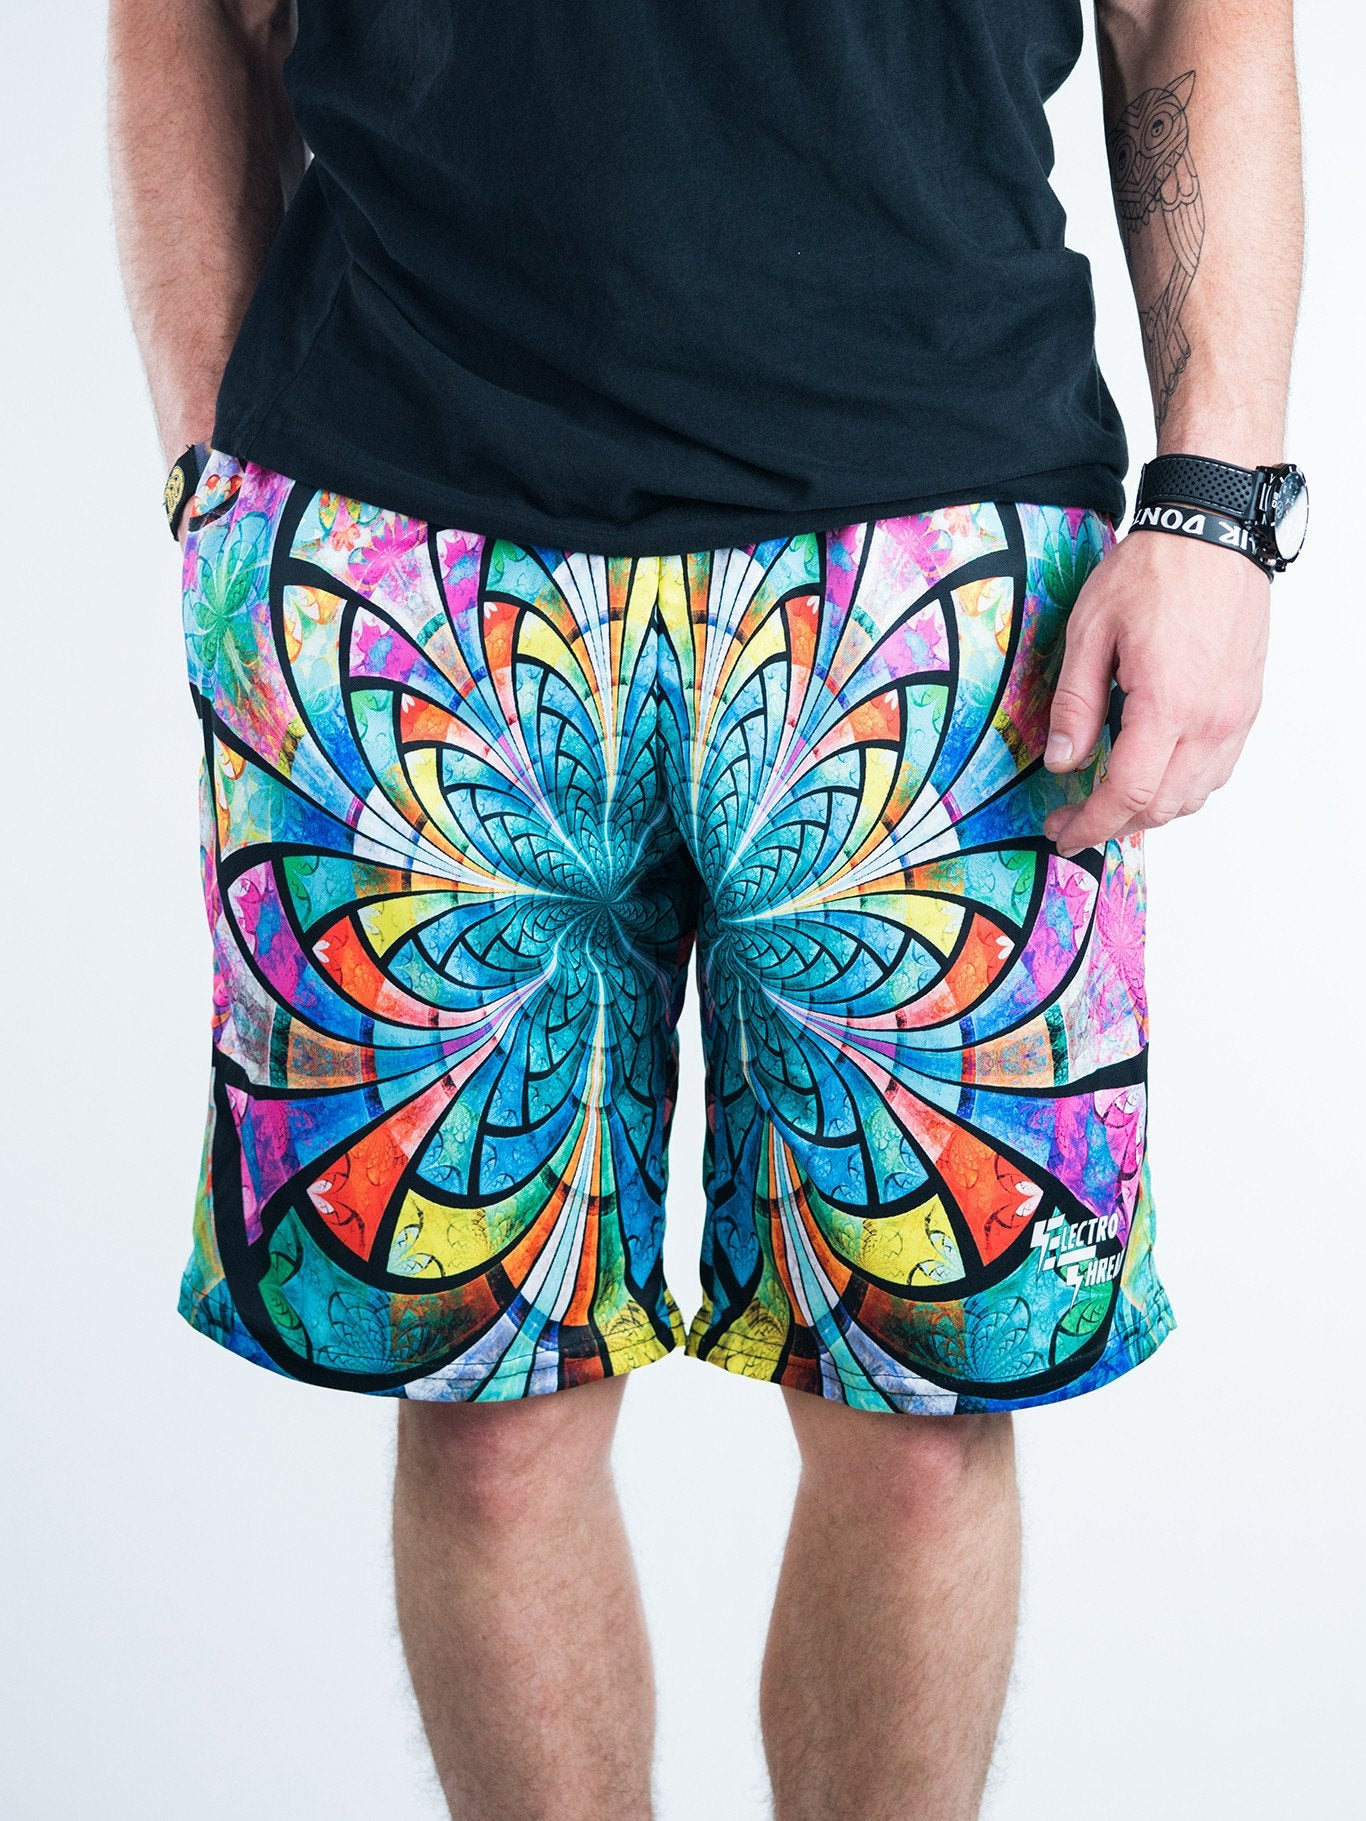 Optical Stained Glass Shorts Mens Shorts T6 28 - XS Green